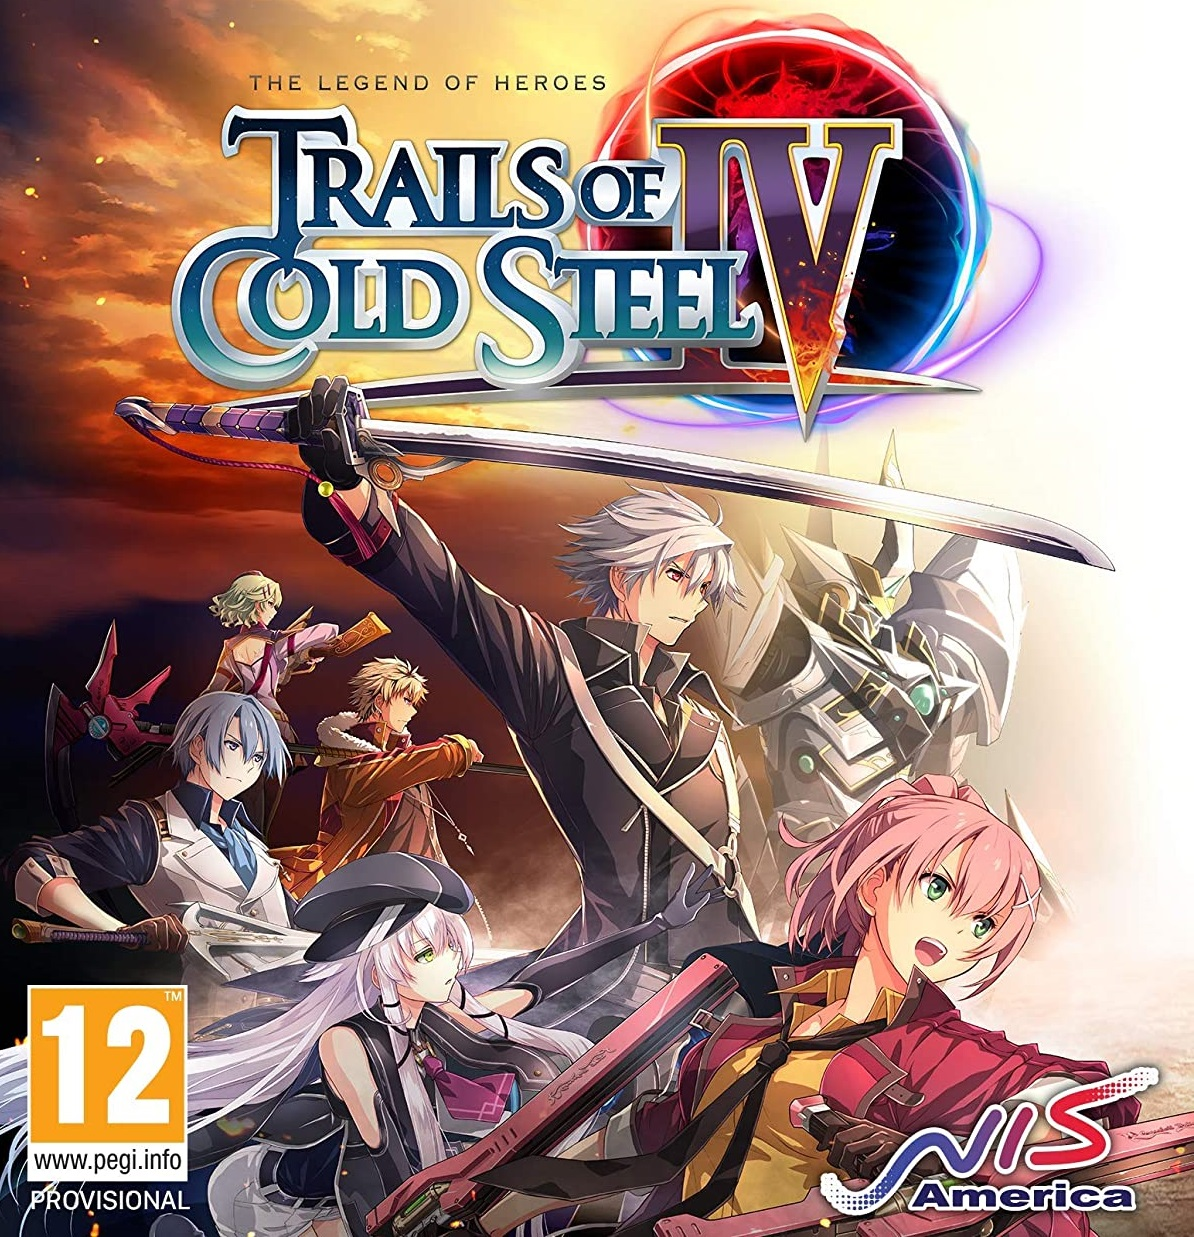 The Legend of Heroes : Trails of Cold Steel IV -The End of Saga-